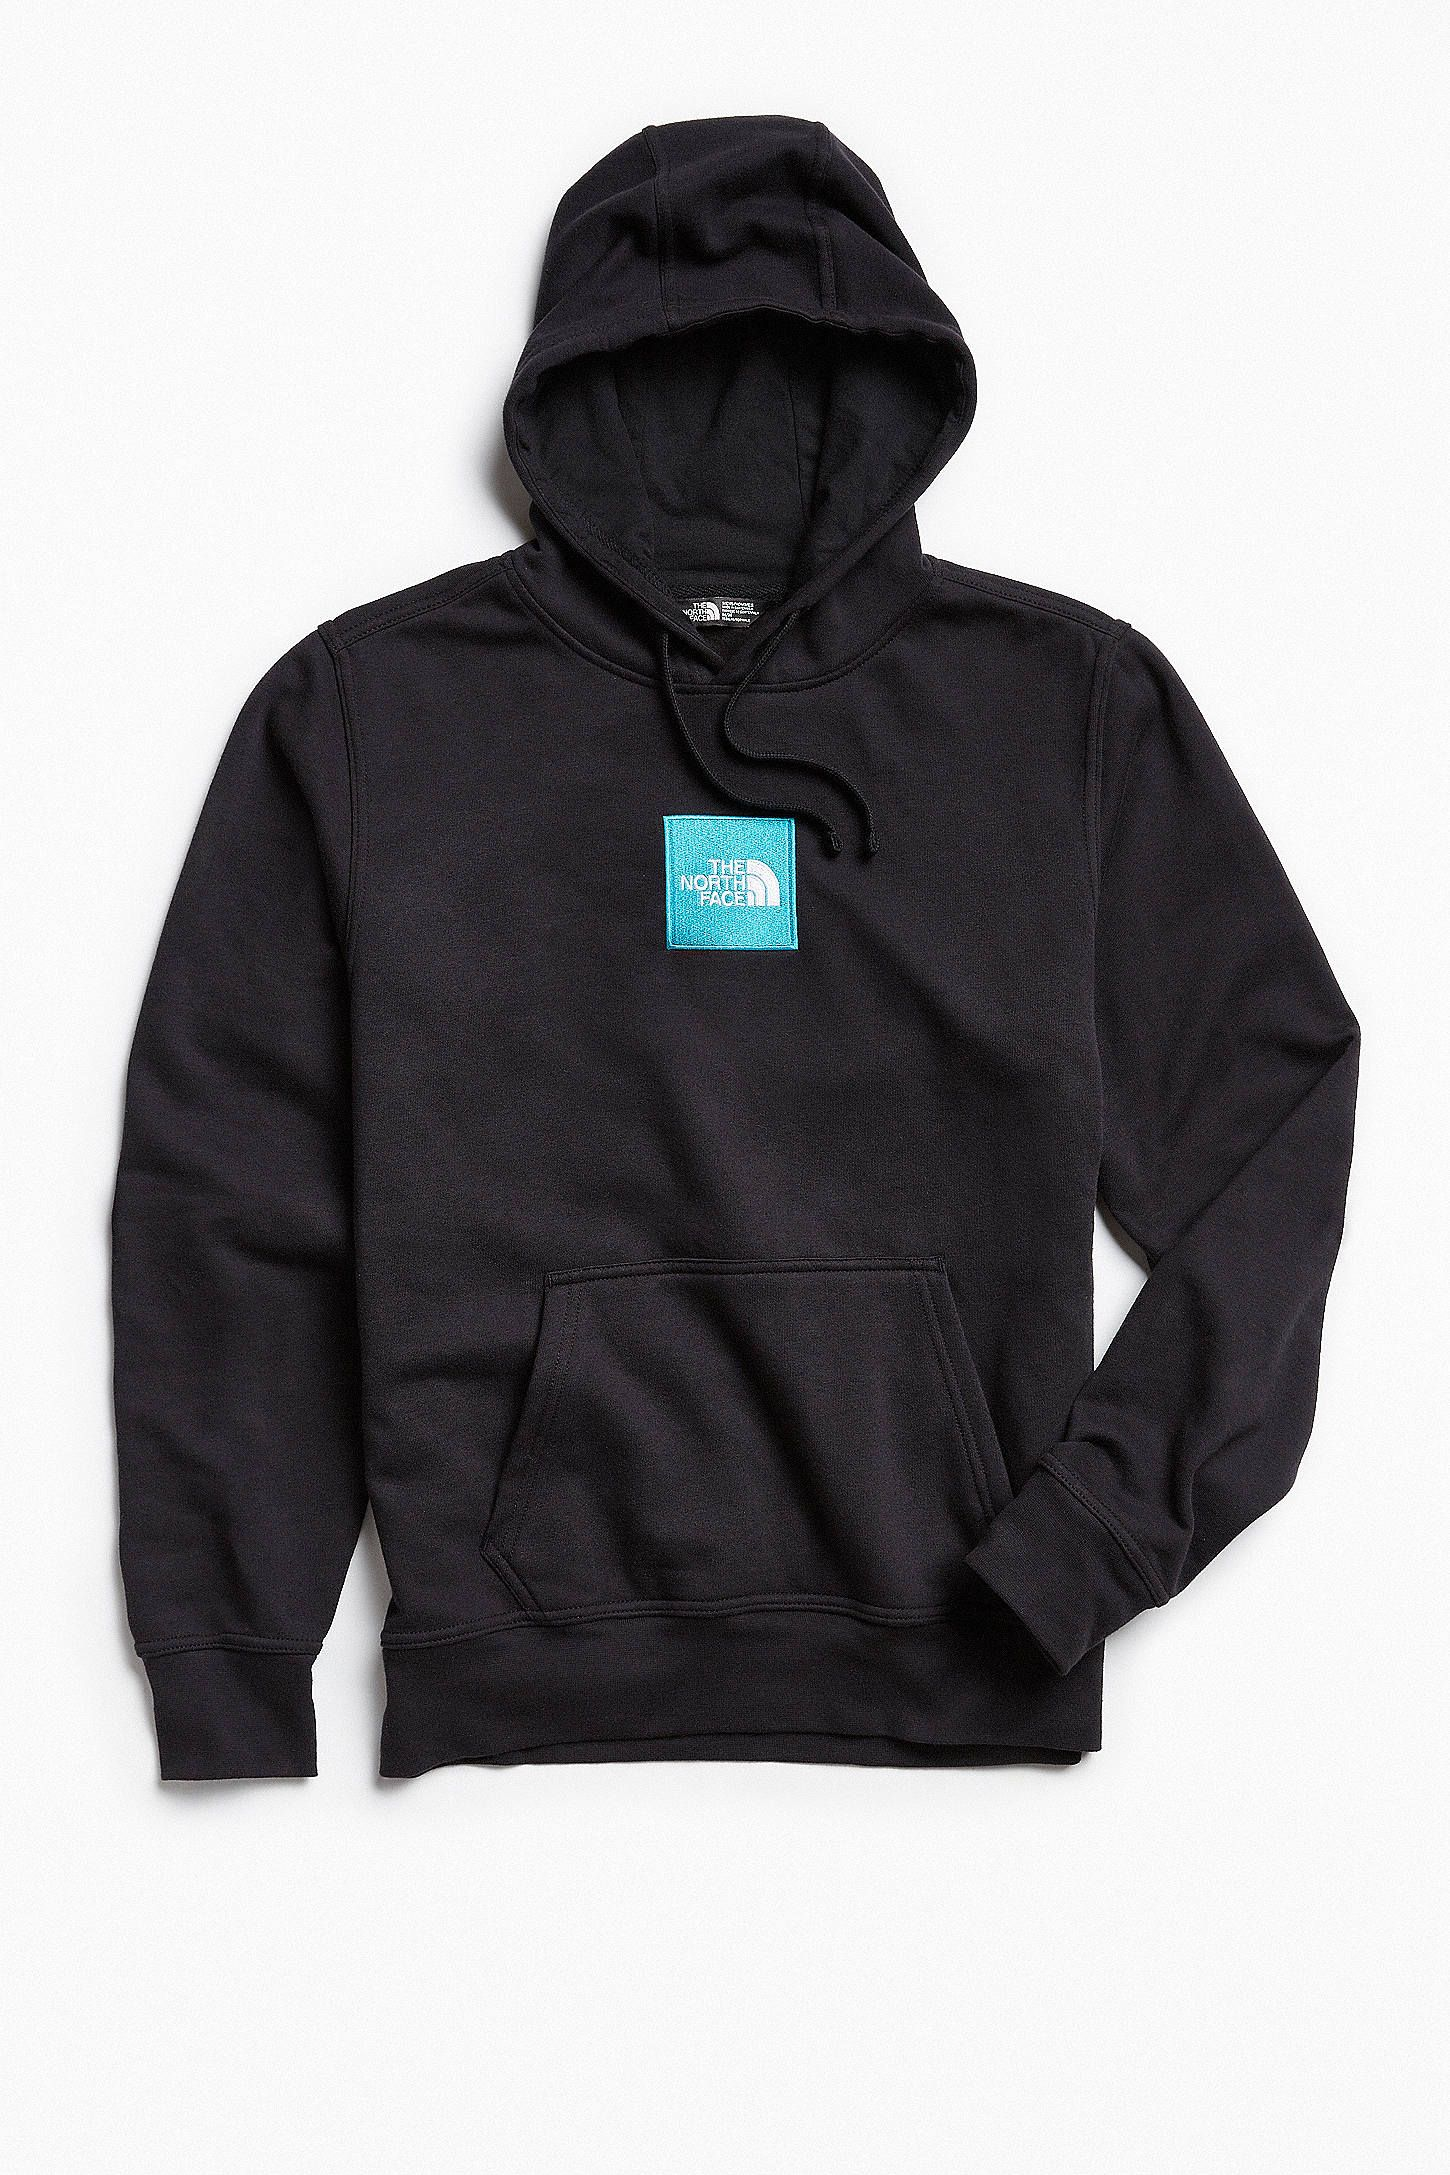 2891fa486774 Shop The North Face Embroidered Box Logo Hoodie Sweatshirt at Urban ...